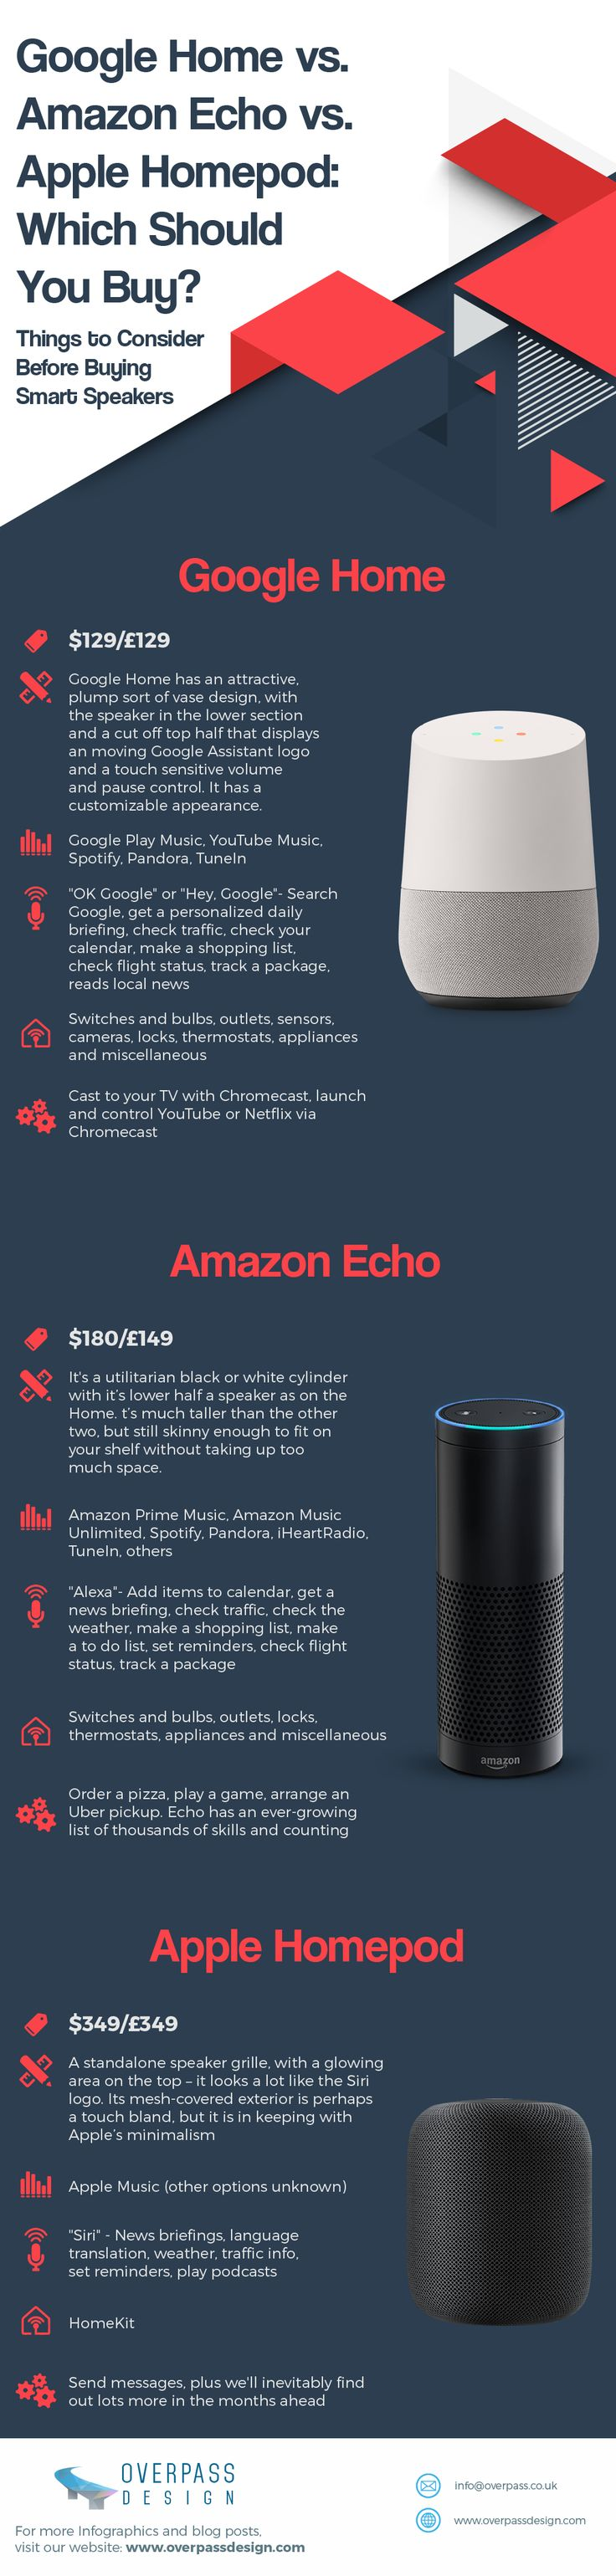 Sharing this infographic to help you decide on what smart speaker should you buy. Check this Infographic: Google Home vs. Amazon Echo vs. Apple Homepod: Which Should You Buy? Things to Consider Before Buying Smart Speakers. Visit our website: www.overpass.co.uk/?utm_content=bufferbaa48&utm_medium=social&utm_source=pinterest.com&utm_campaign=buffer for more infographic topics.